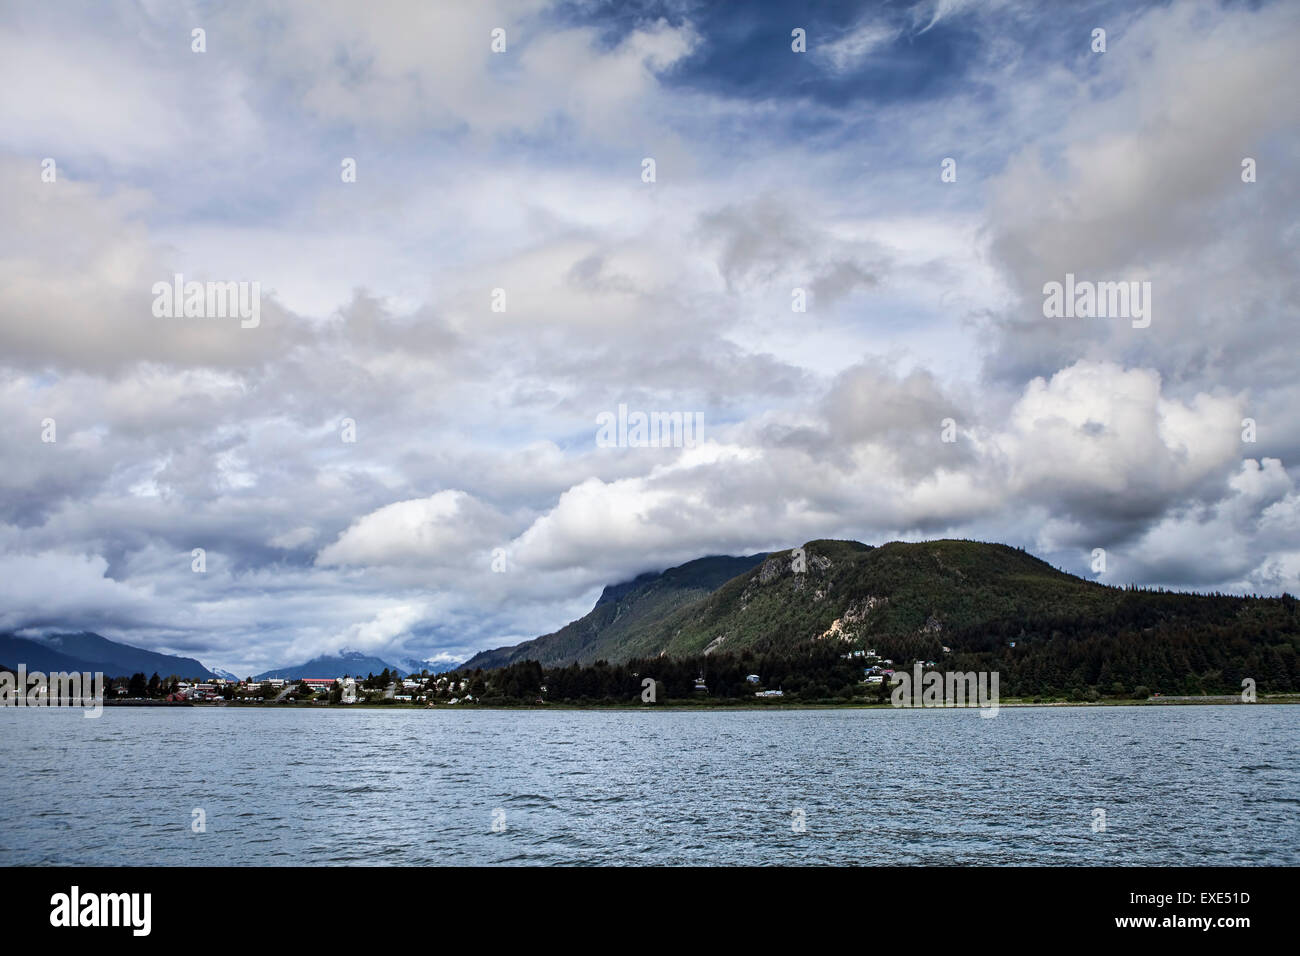 Skagway with summer clouds as seen from a boat - Stock Image